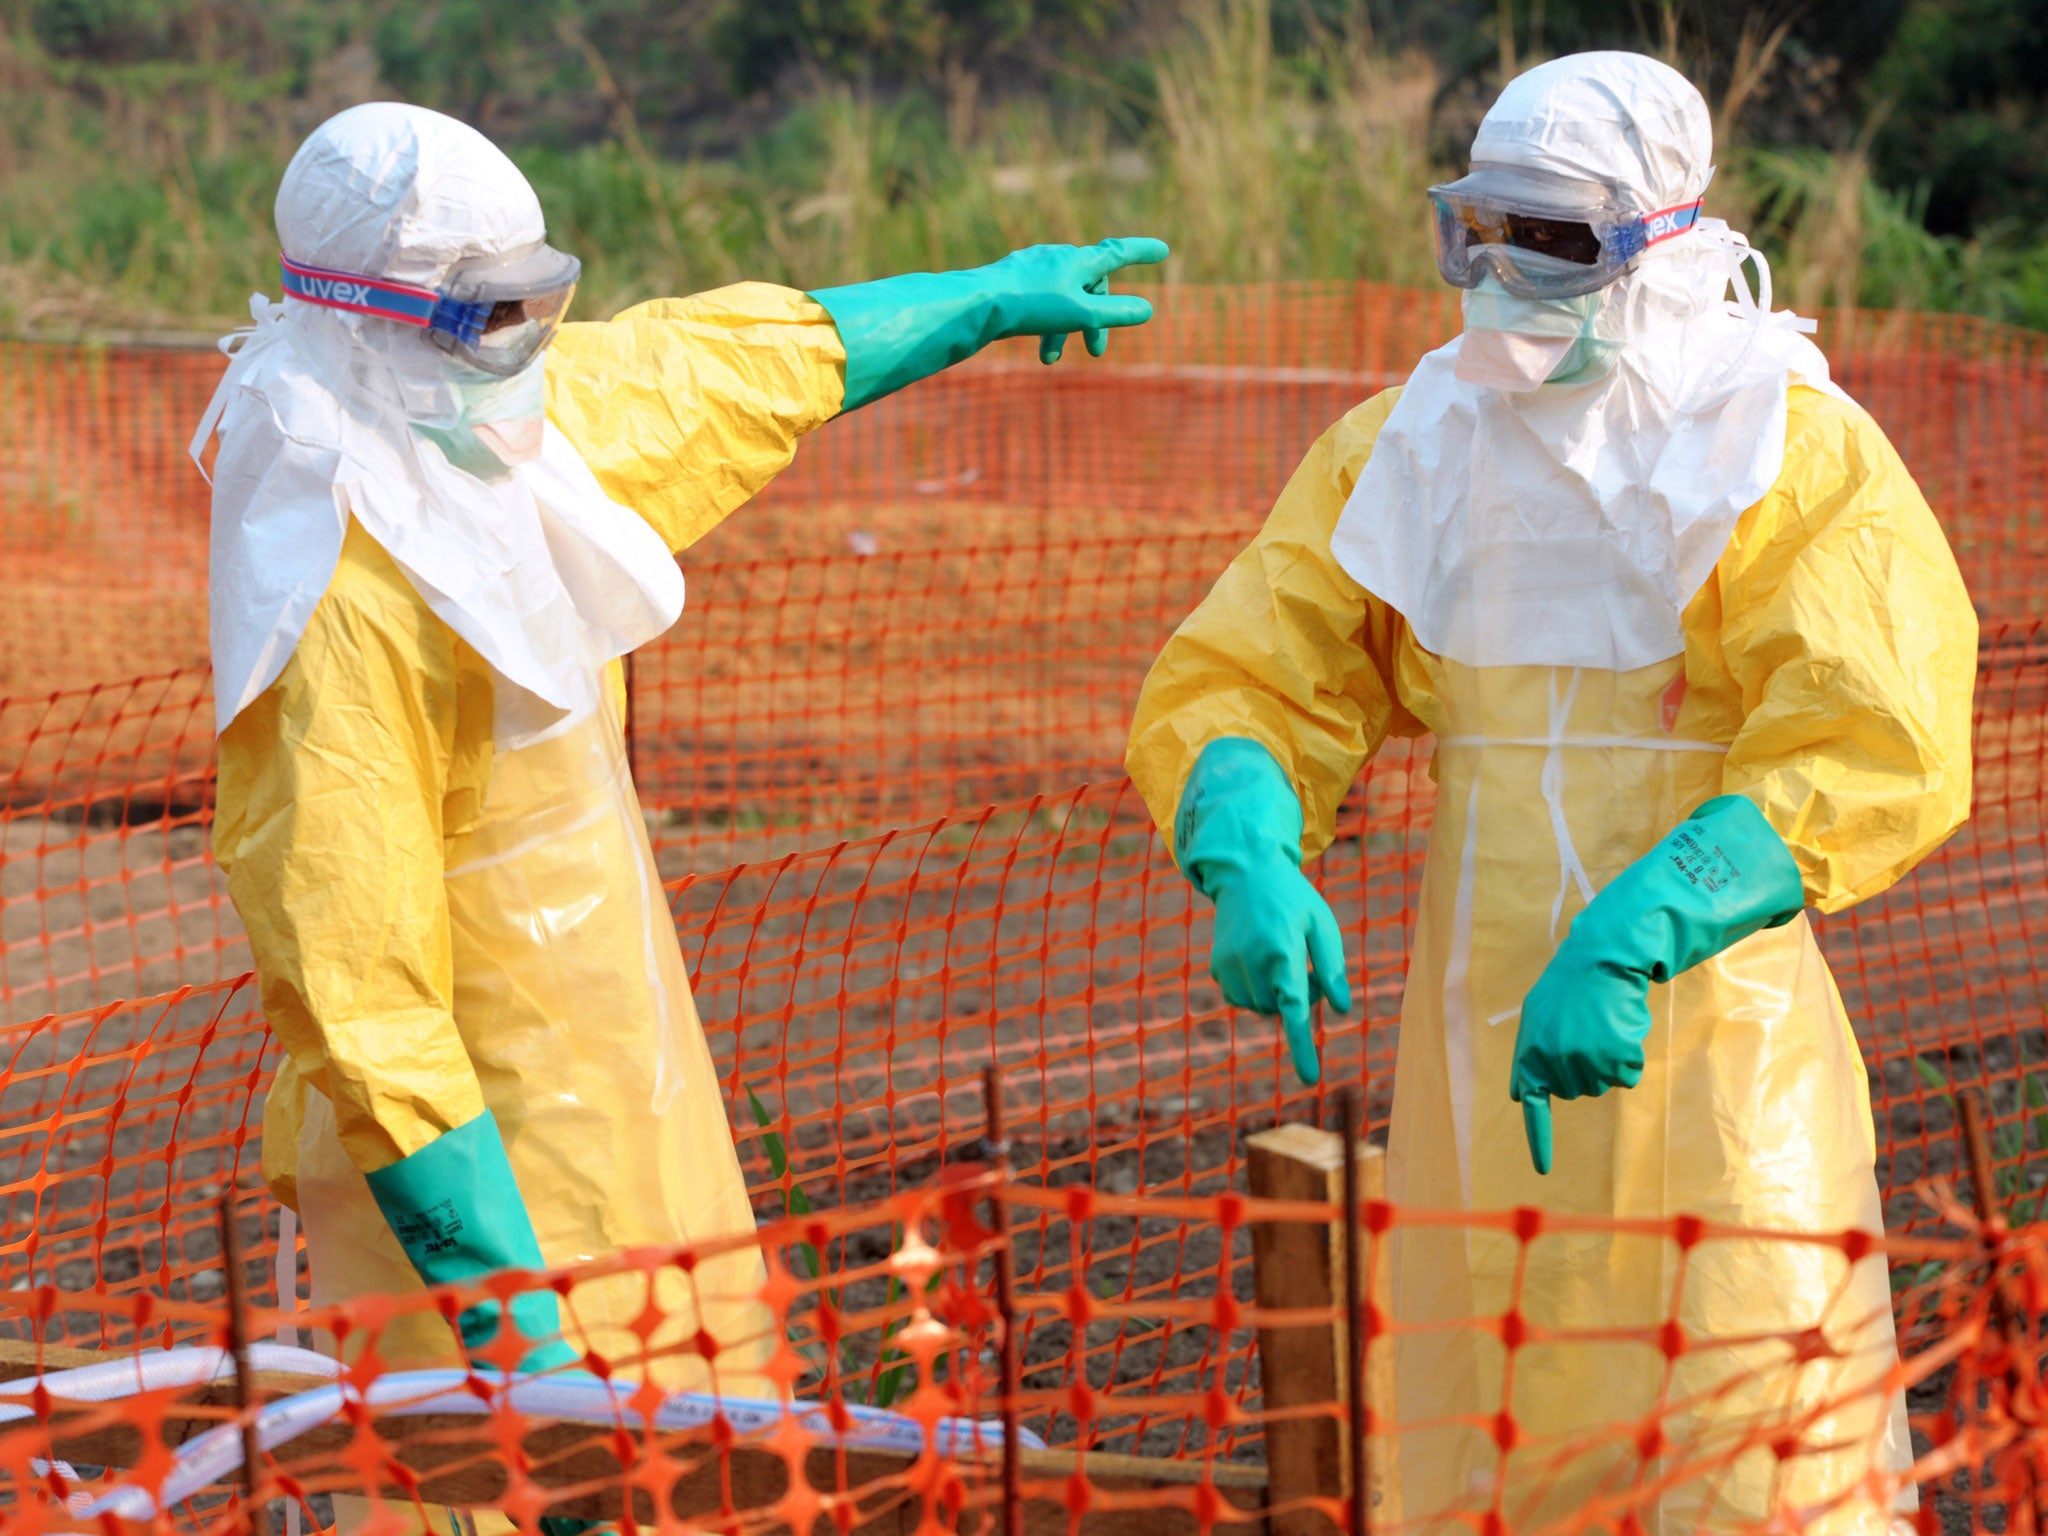 As Ebola, Mers and HIV/Aids make headlines, what are the biggest risks to the world's health? And what is being done about them?